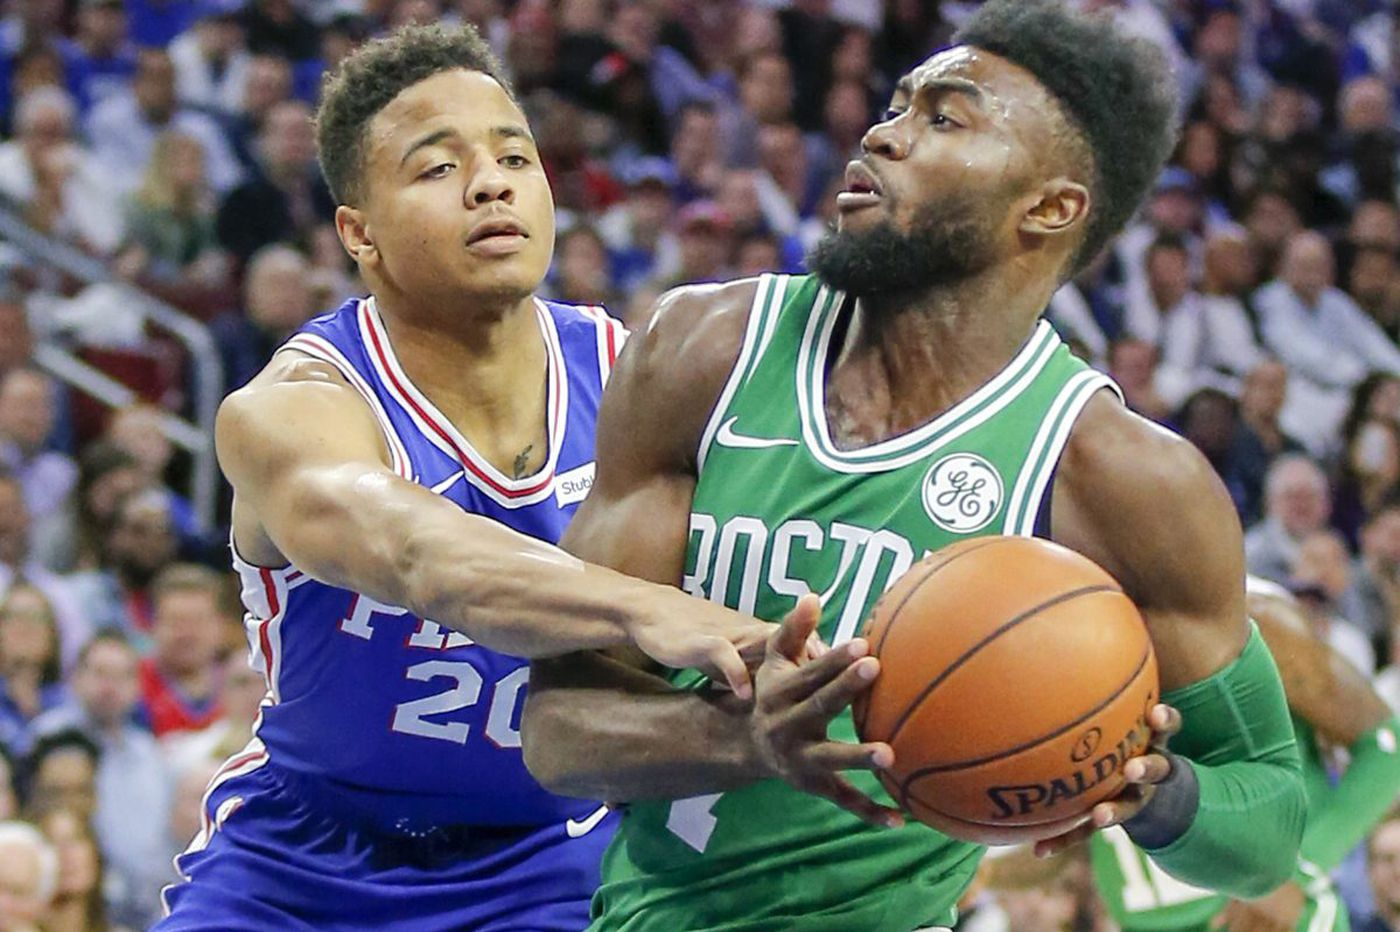 Markelle Fultz is falling behind; it's time for him to play